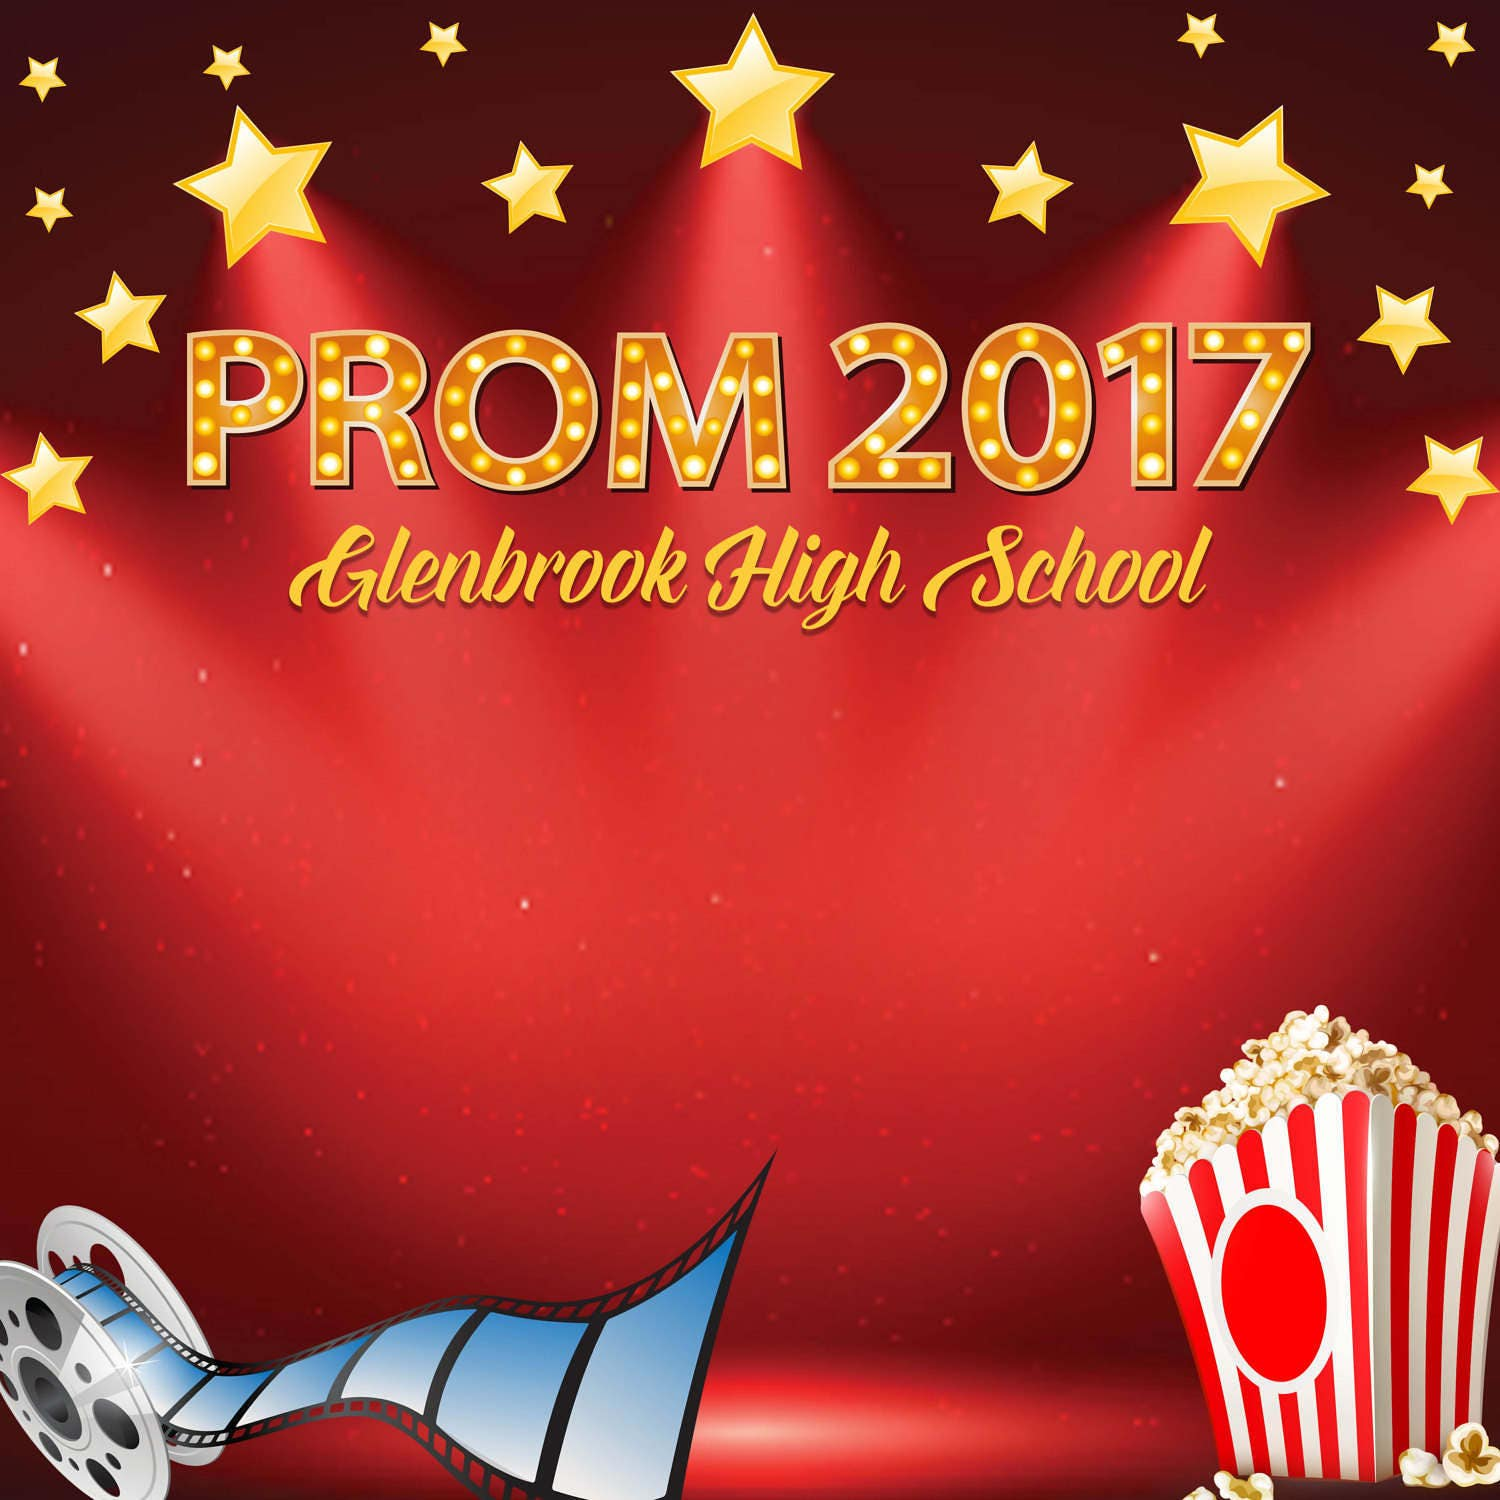 Prom Personalized Photo Backdrop